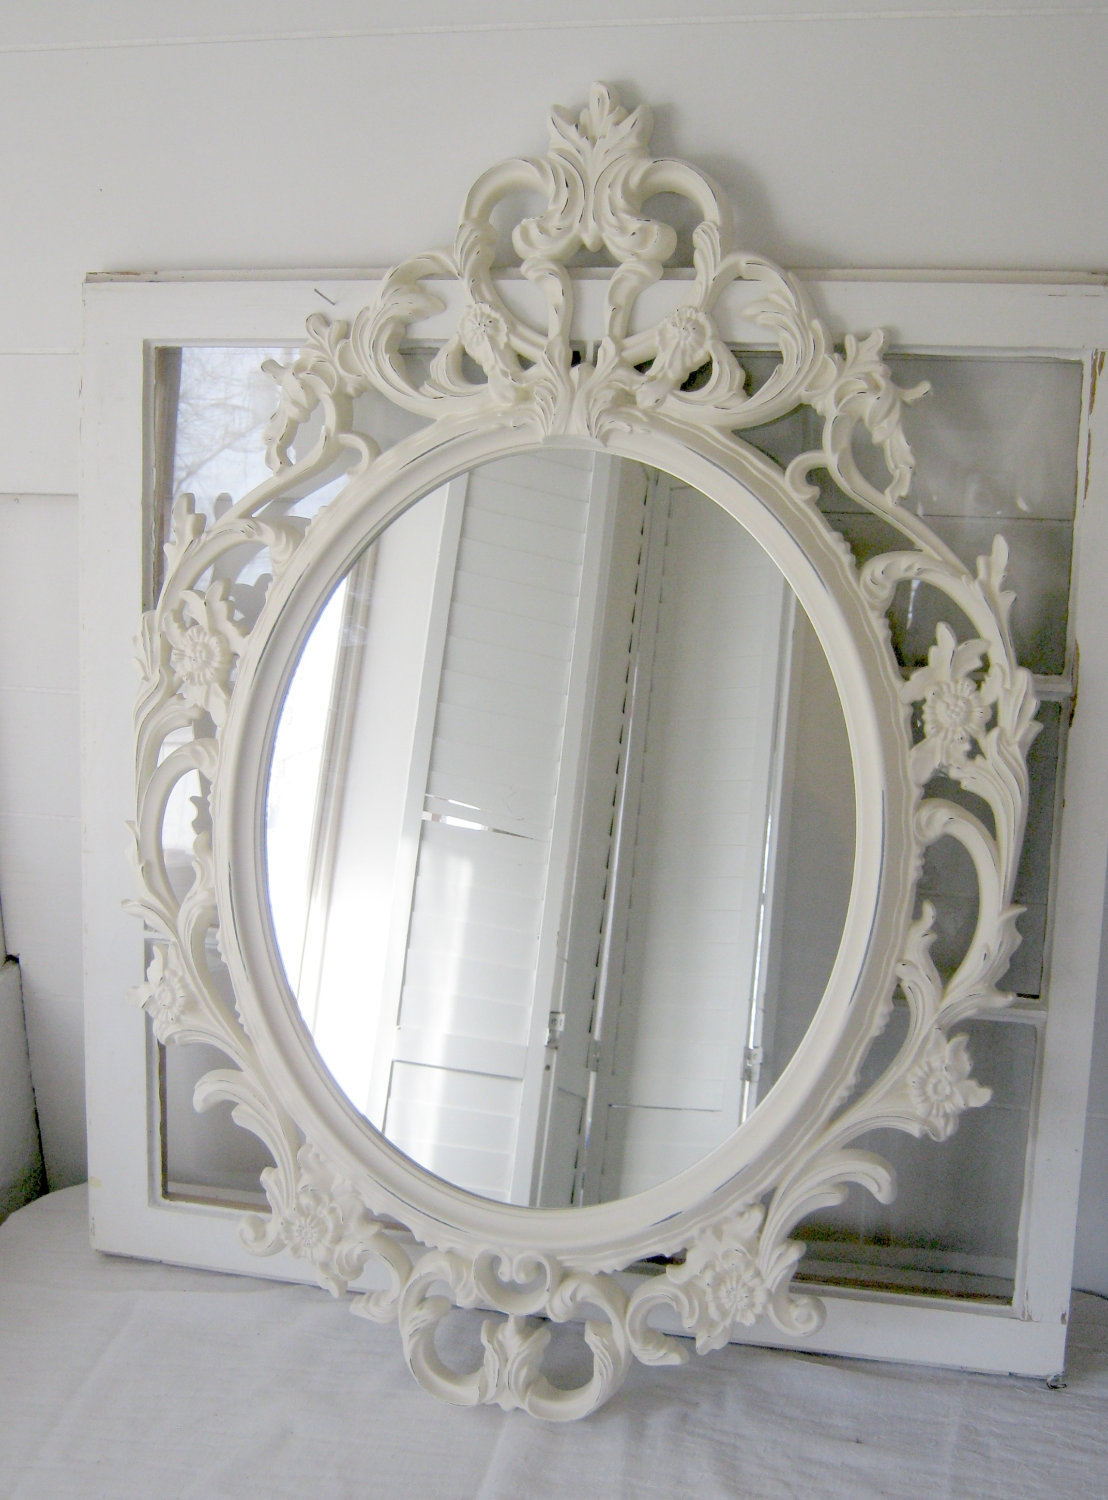 Shab Chic Baroque Oval Mirror Antique White Ornate Mirror Intended For White Antique Mirror (Image 10 of 15)